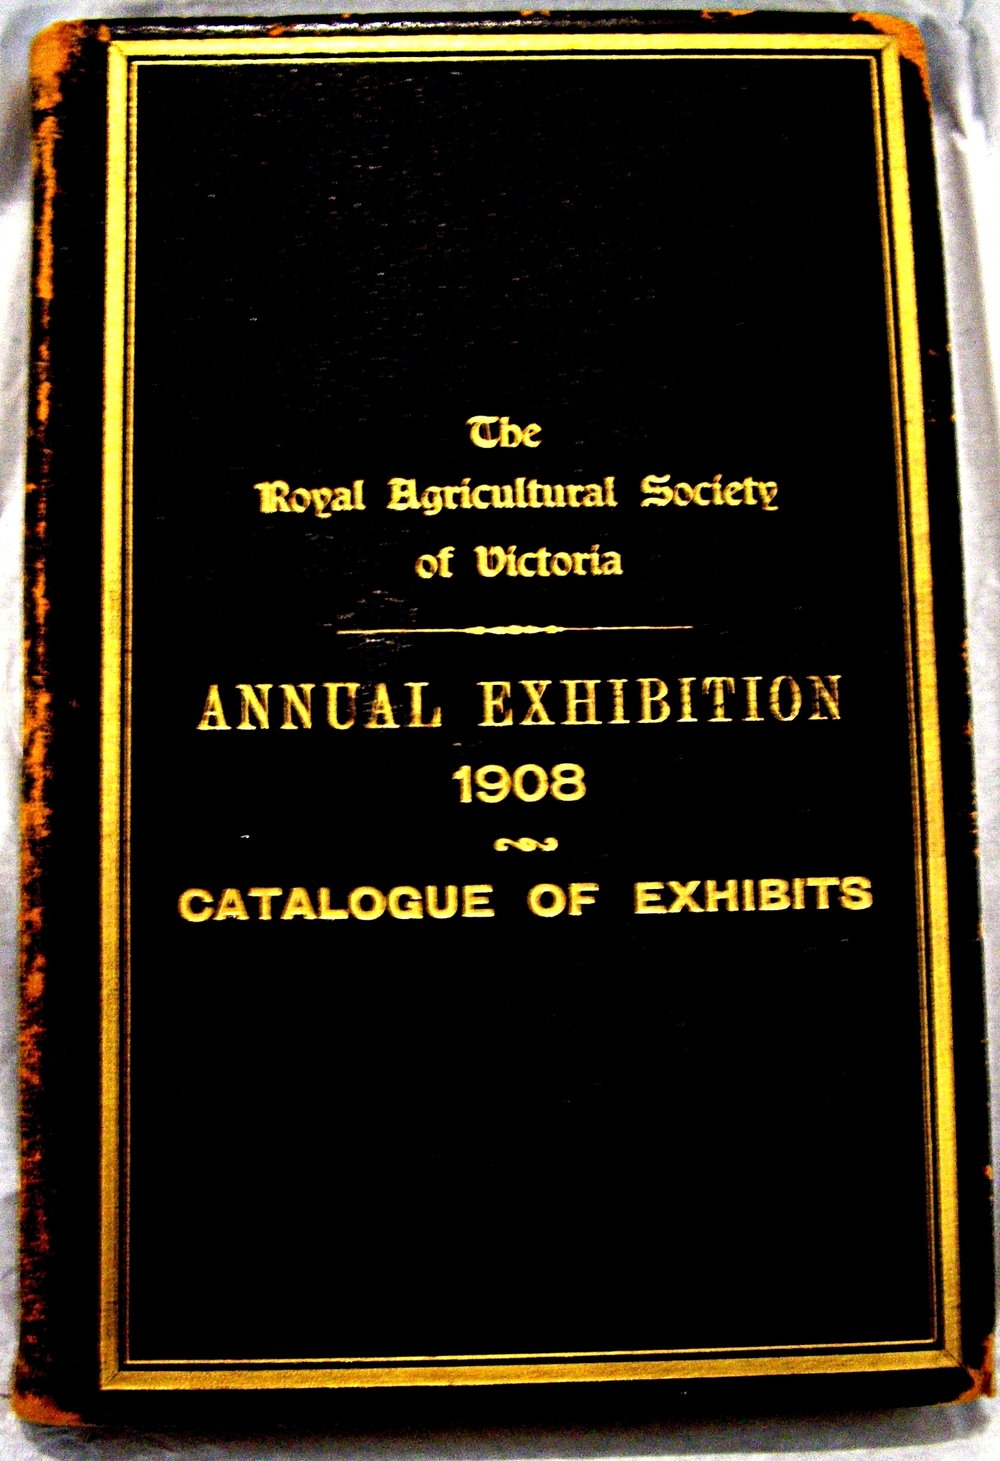 Annual Exhibition 1908 Catalogue of Exhibits